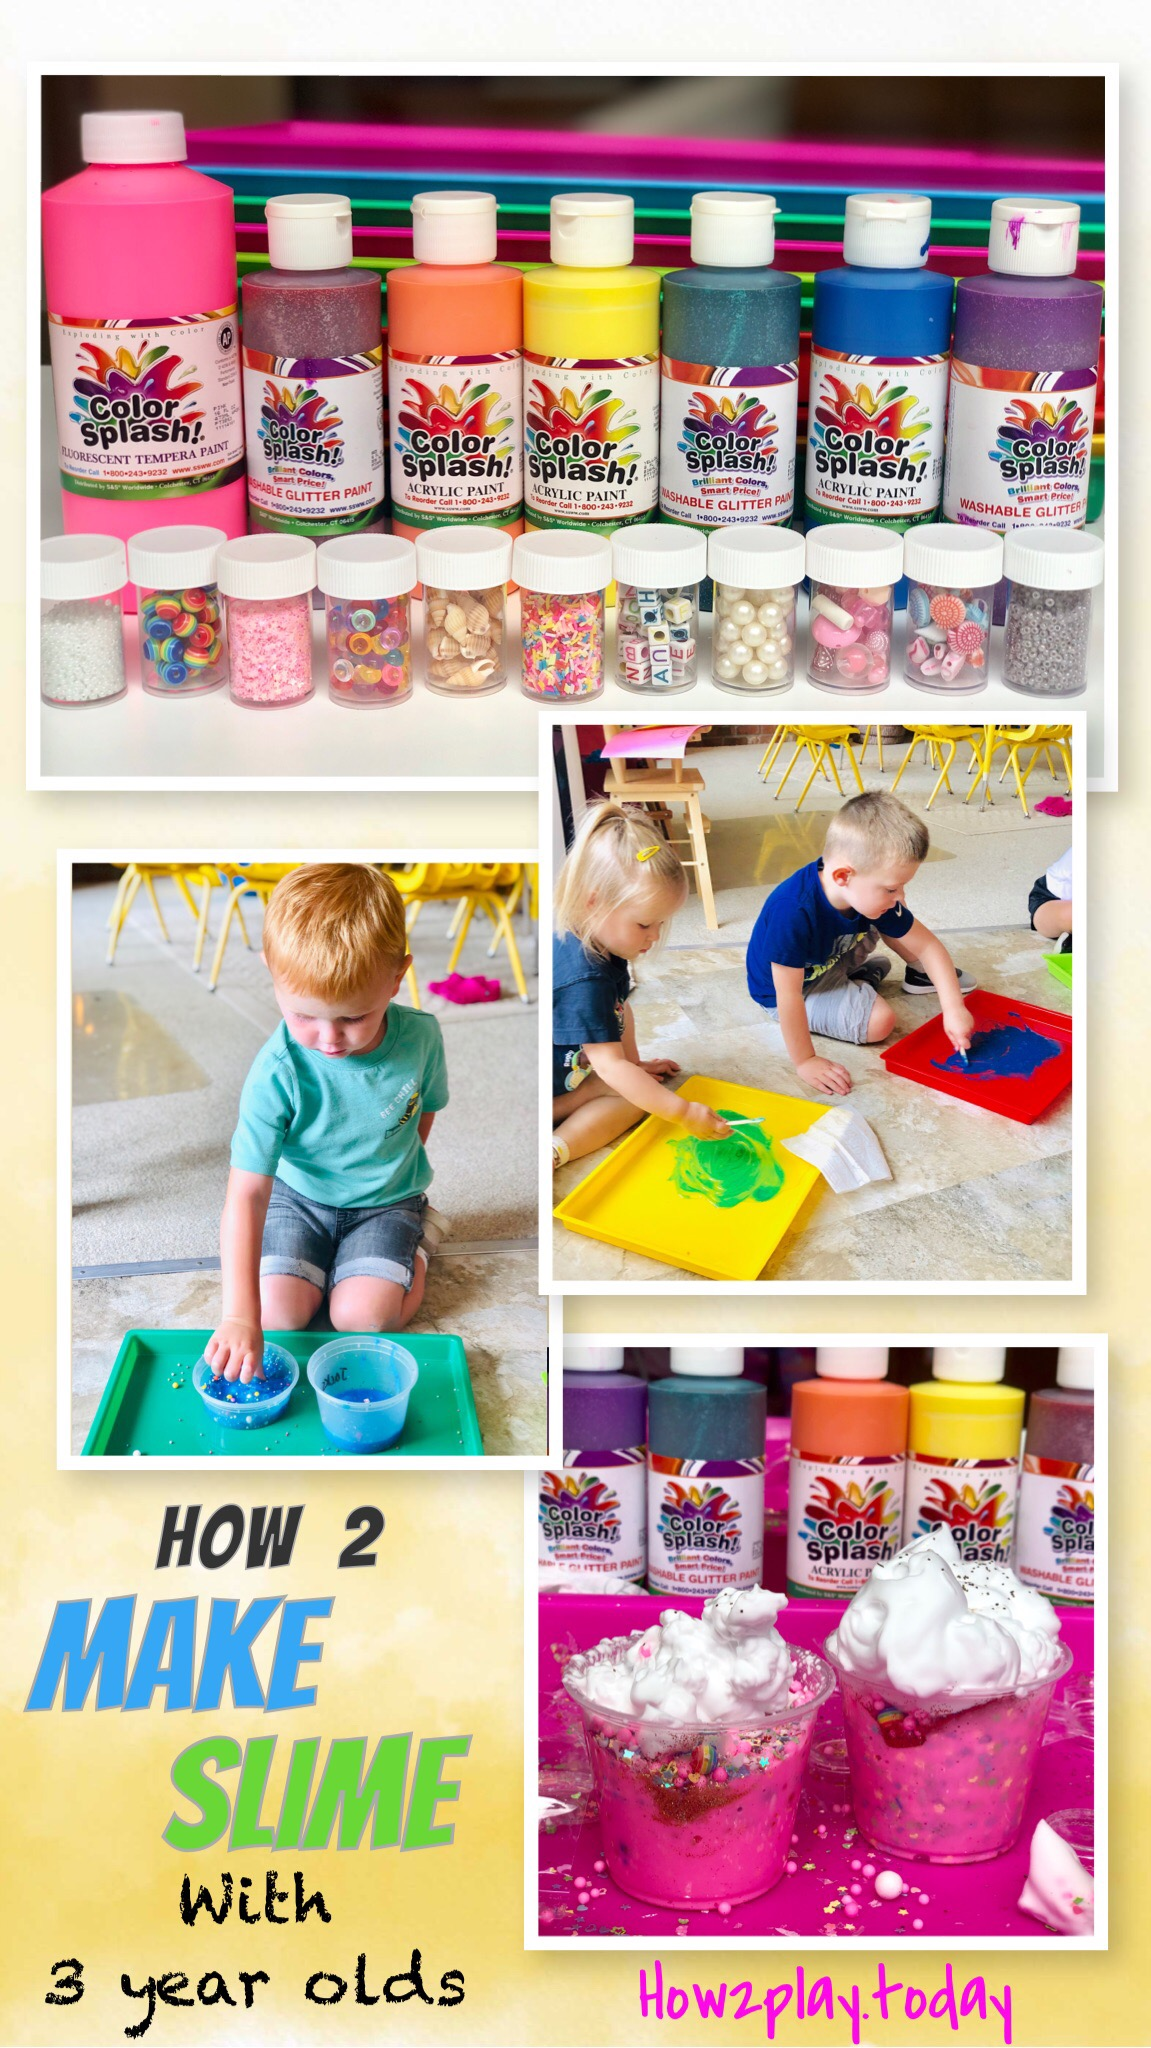 How to create slime with 3 year olds and avoid the worry of messes.